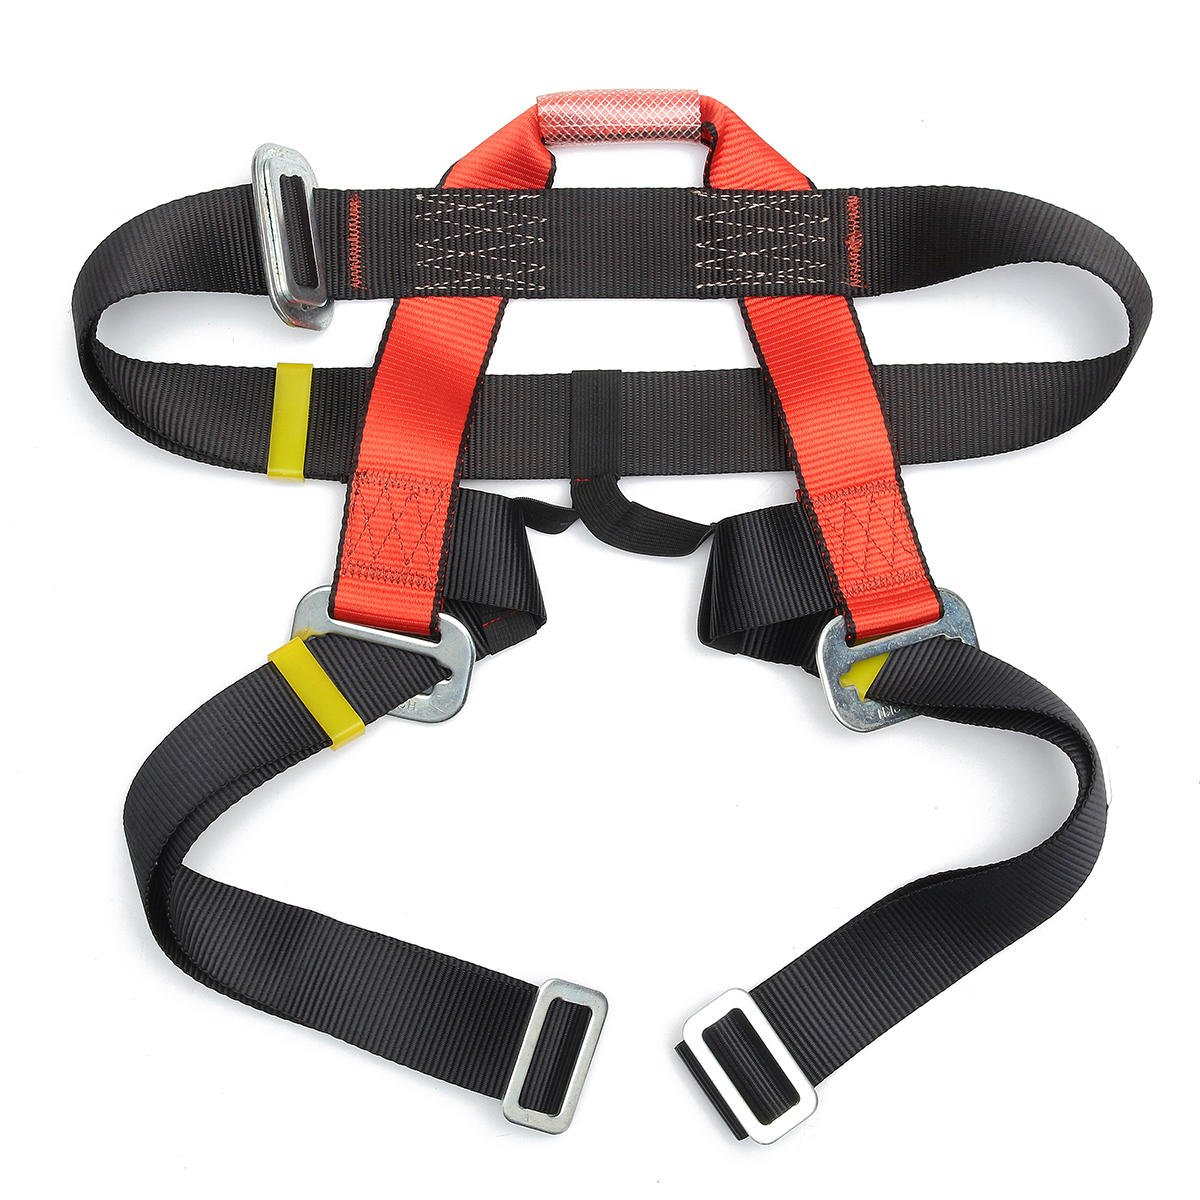 ThyWay Outdoor Mountain Rock Climbing Rappelling Harness Bust Belt Rescue Safety Seat Sitting Strap